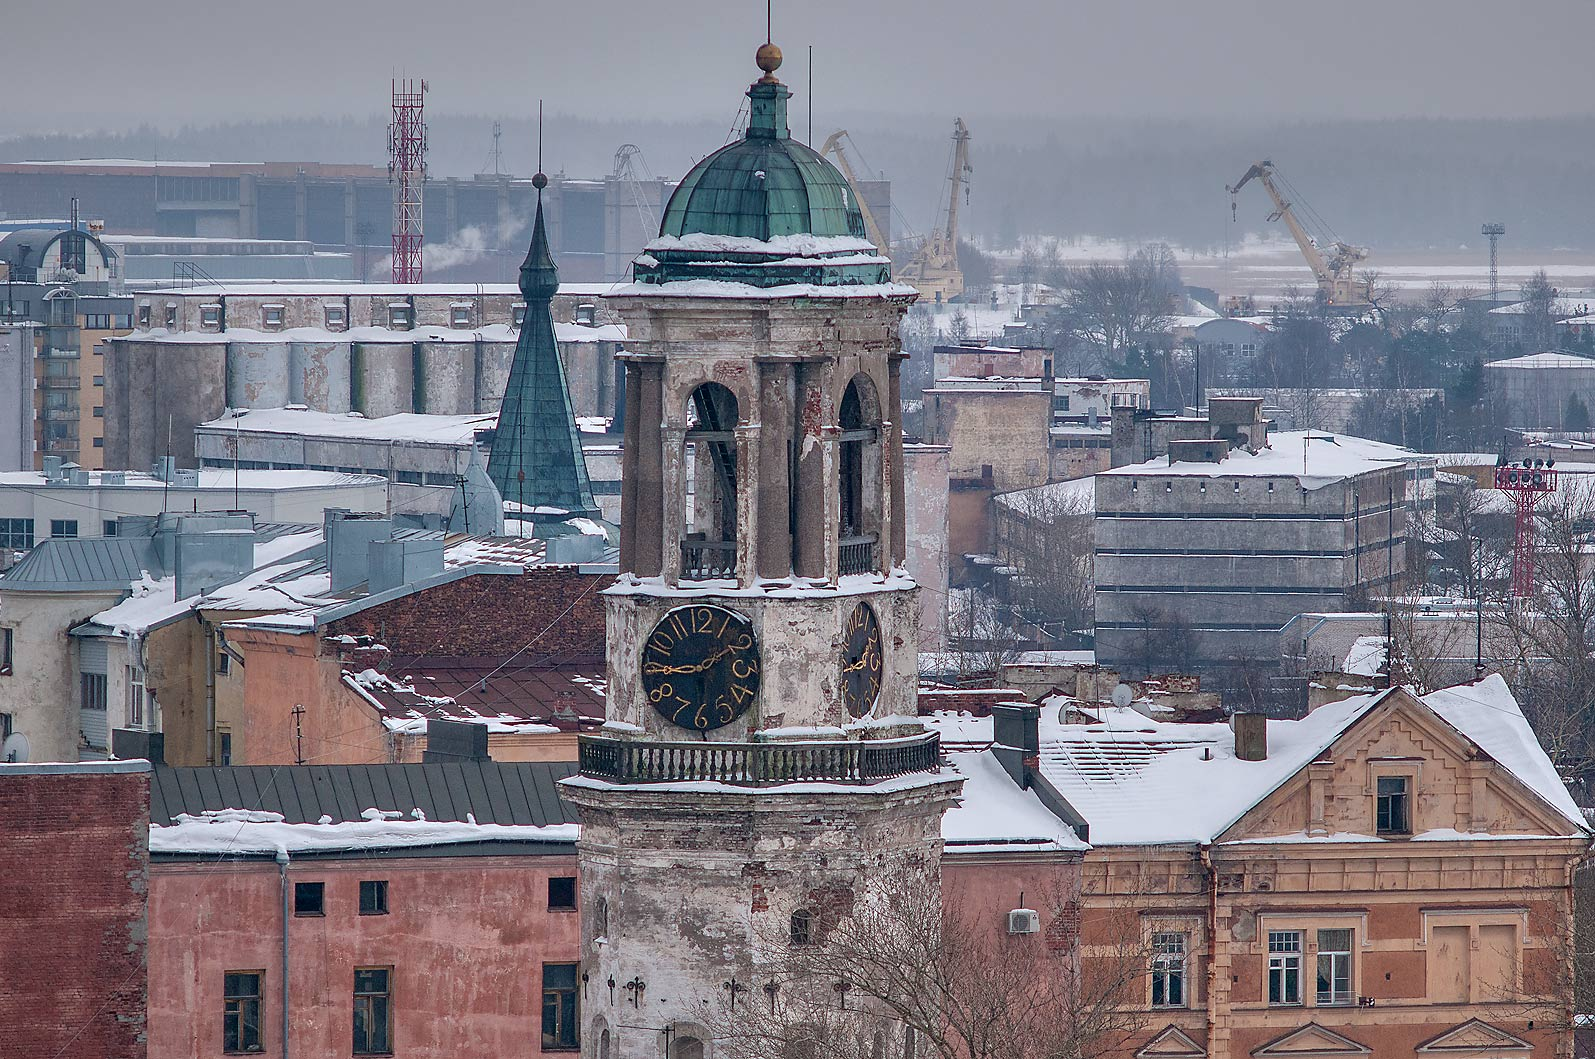 Clock Tower and old city from St. Olaf Tower of Vyborg Castle. Vyborg, Russia